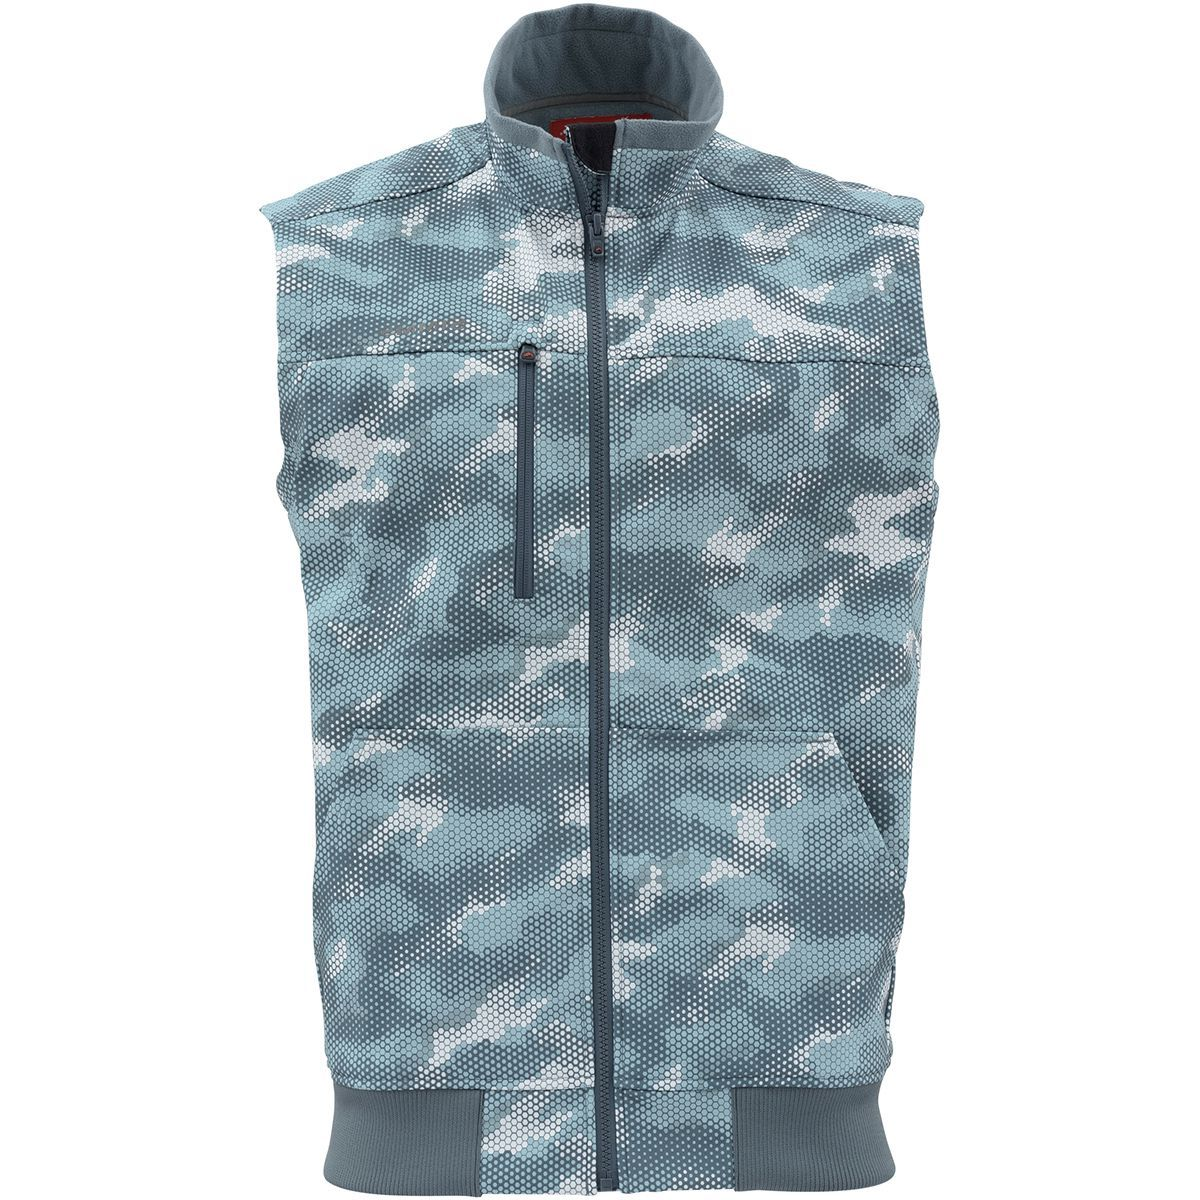 Simms Rogue Fleece Vest - Men's